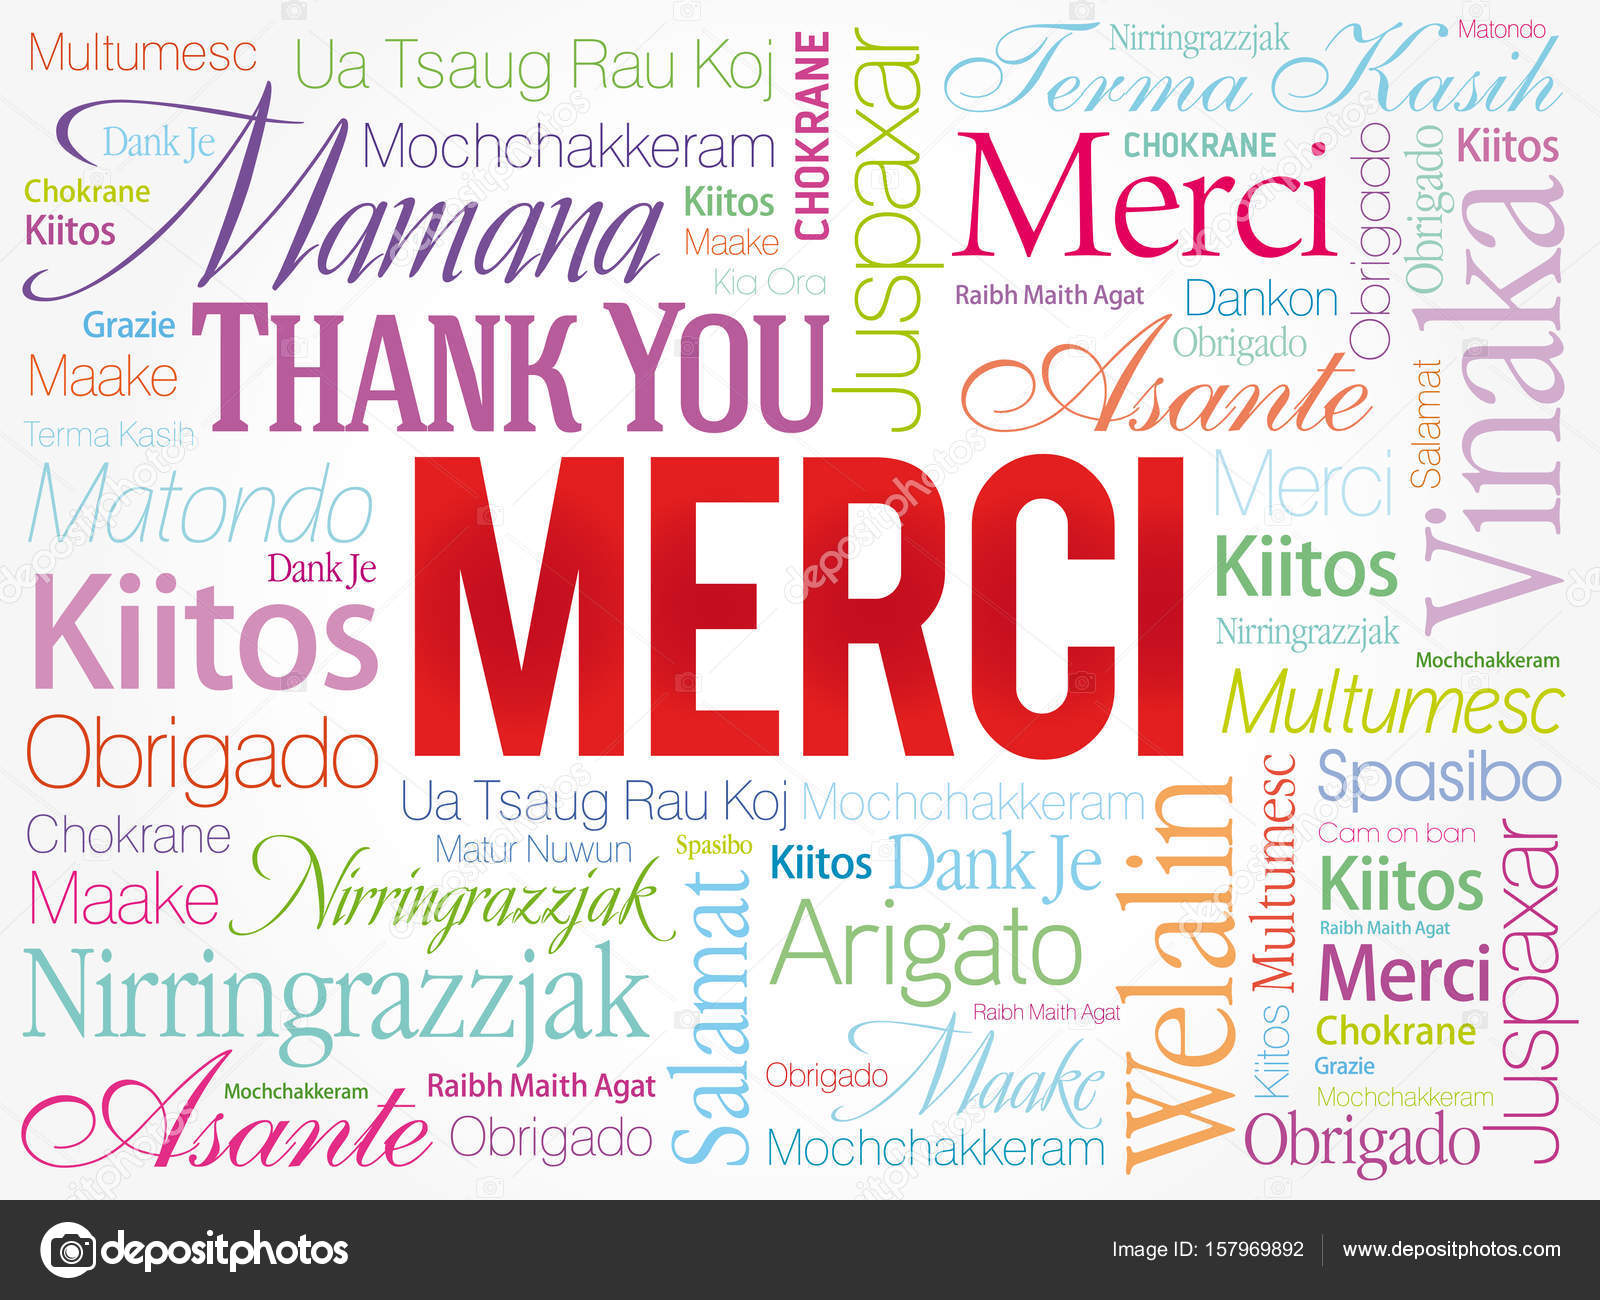 Thank You Same To You In French